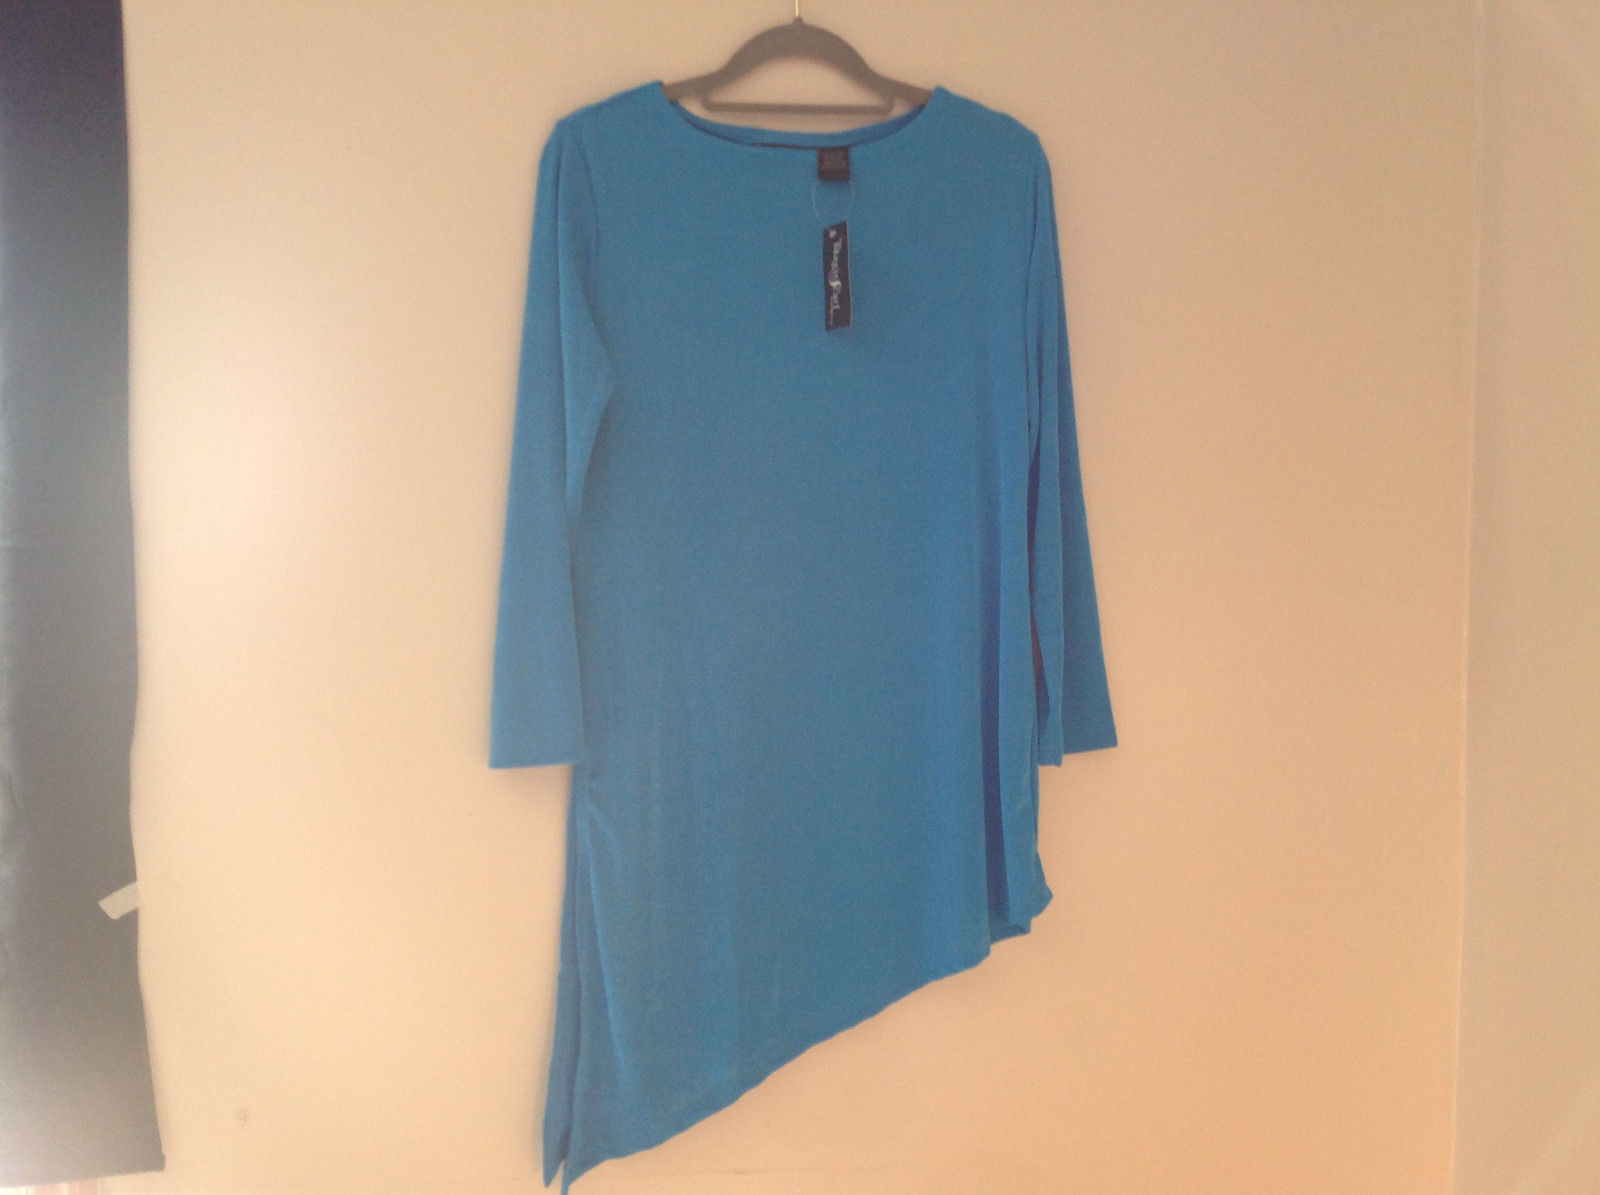 Blue Long Sleeve Asymmetrical Bottom Shirt Stretchy Material Size One Size